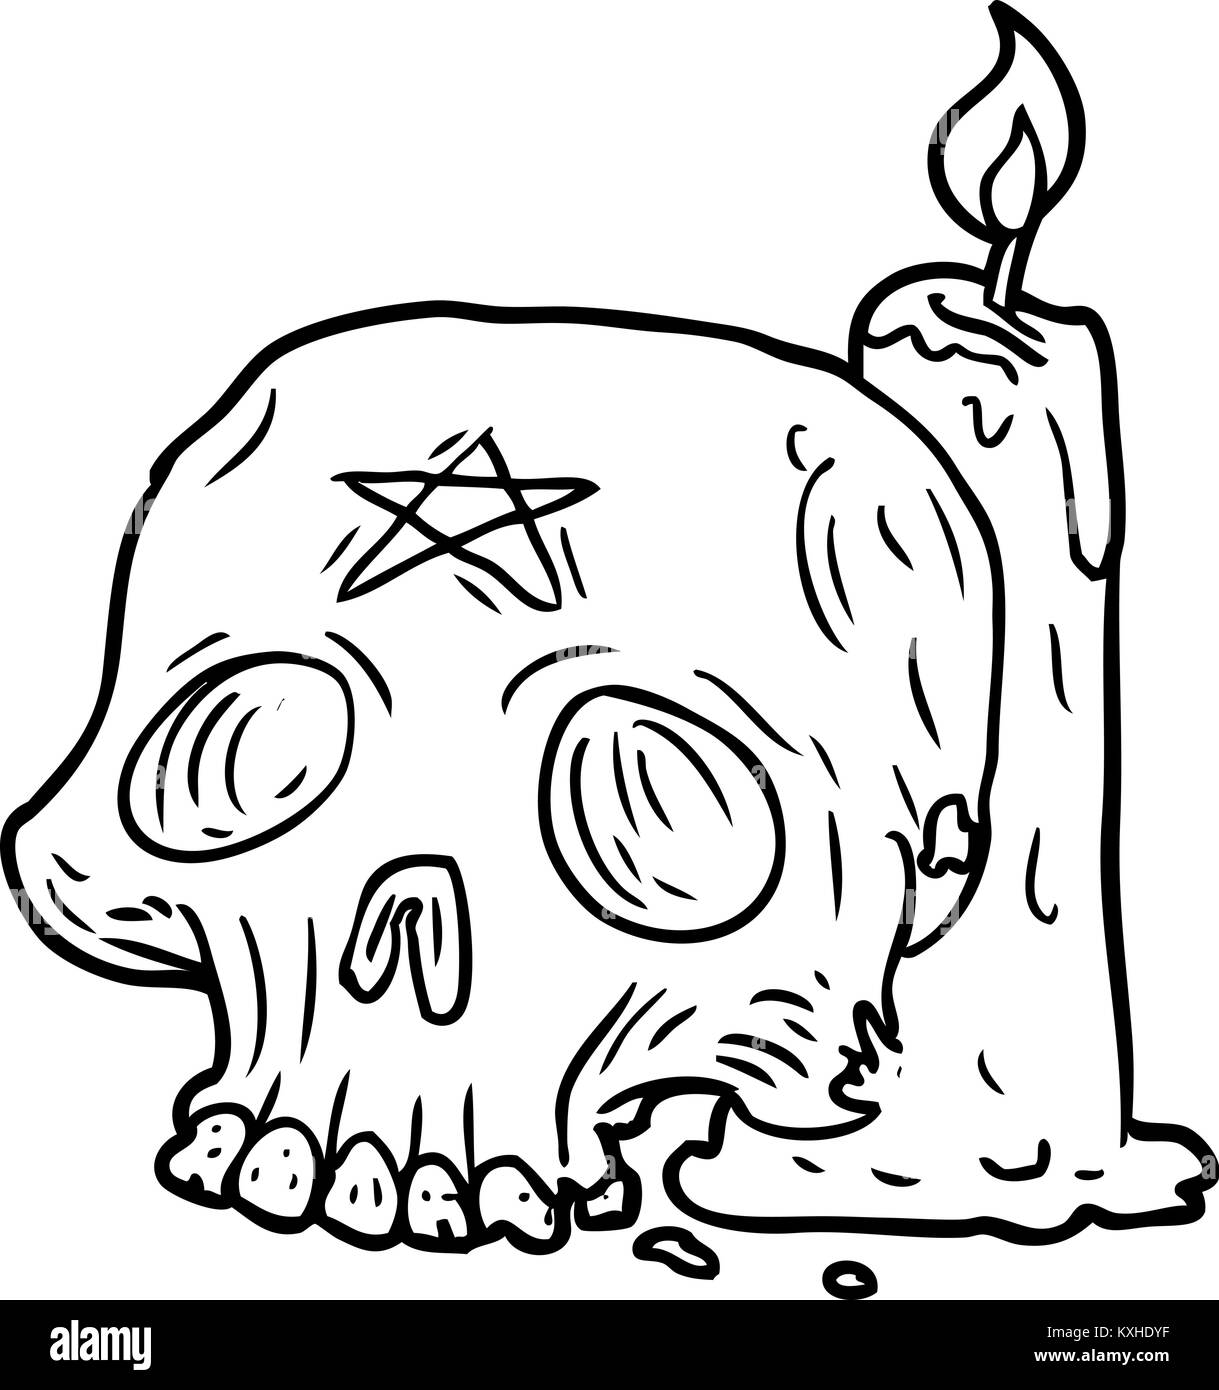 Line drawing of a spooky skull and candle stock image